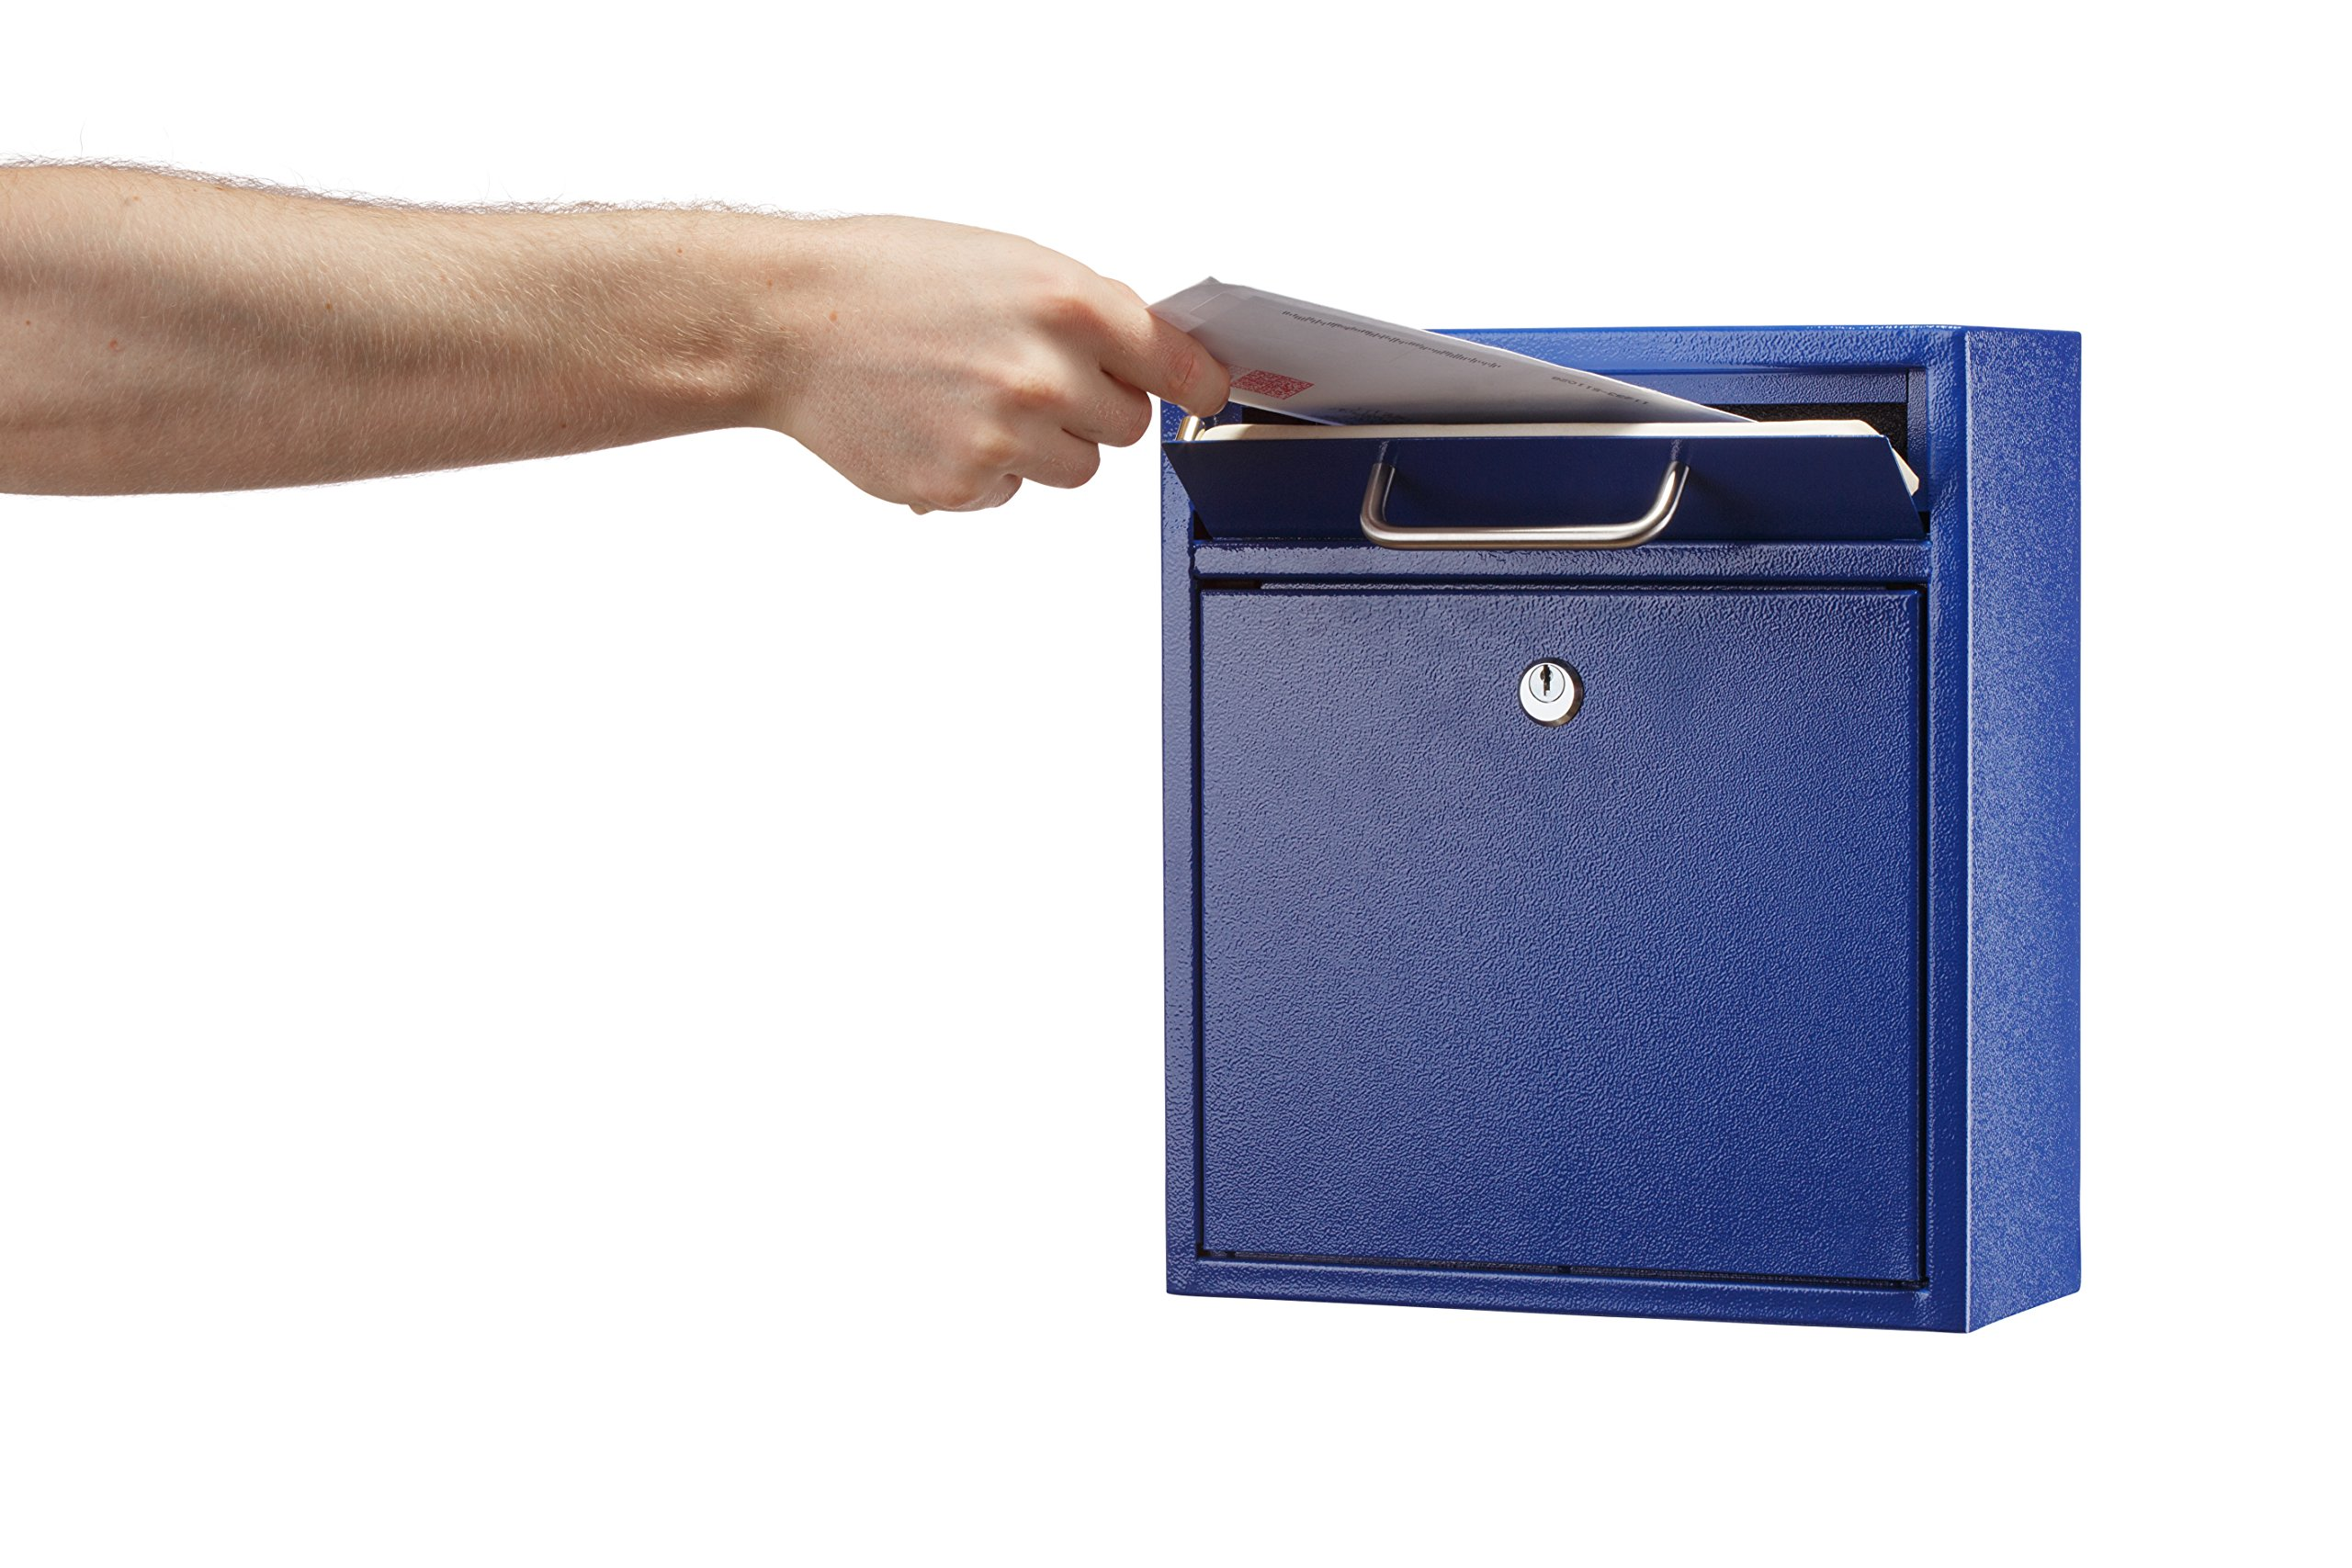 AdirOffice Locking Drop Box - Wall Mounted Mailbox - (Medium, Blue) by Adir Corp. (Image #3)